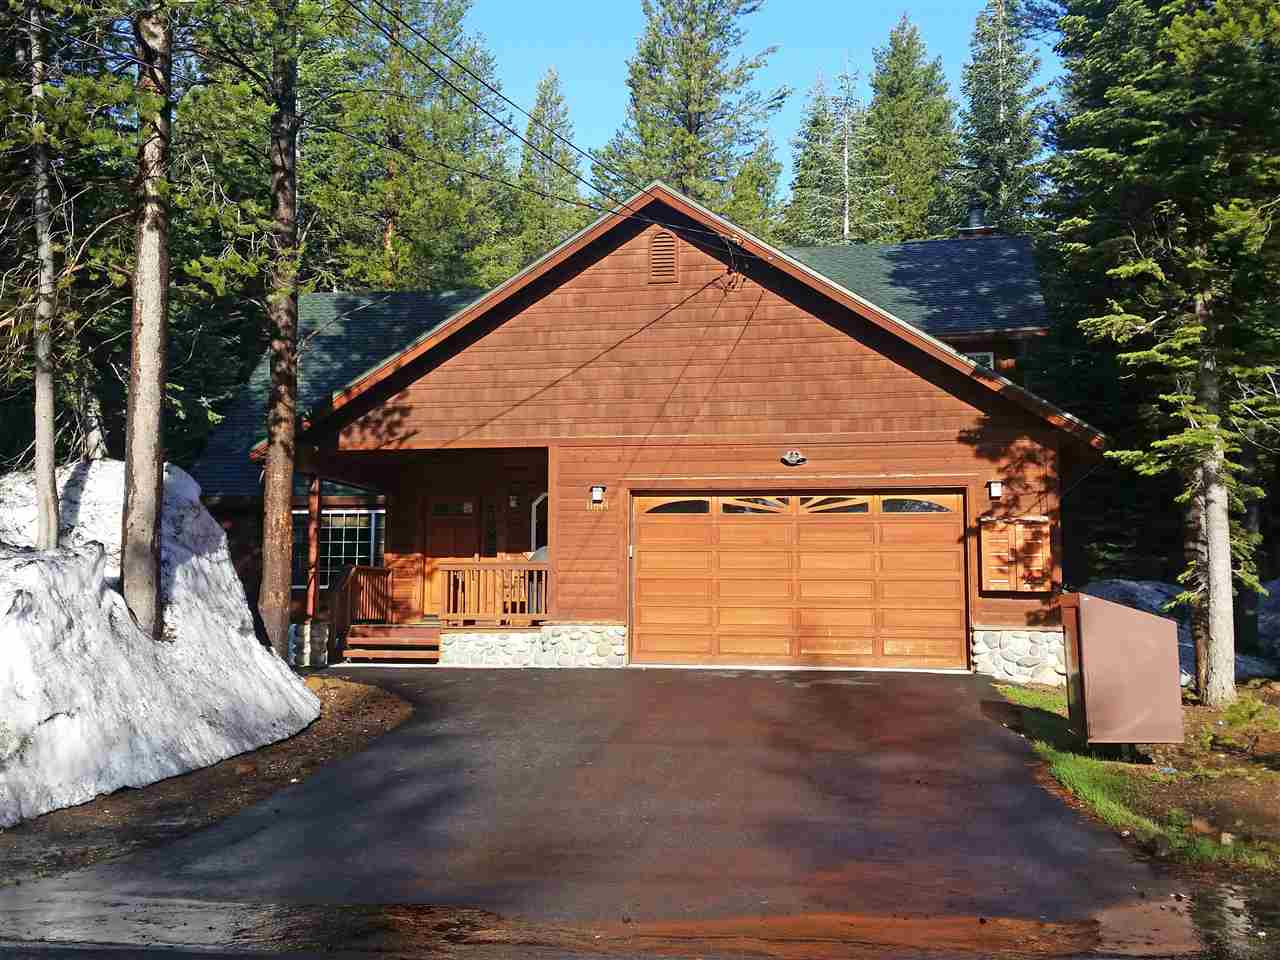 Single Family Home for Active at 11644 Norse Avenue Truckee, California 96161 United States